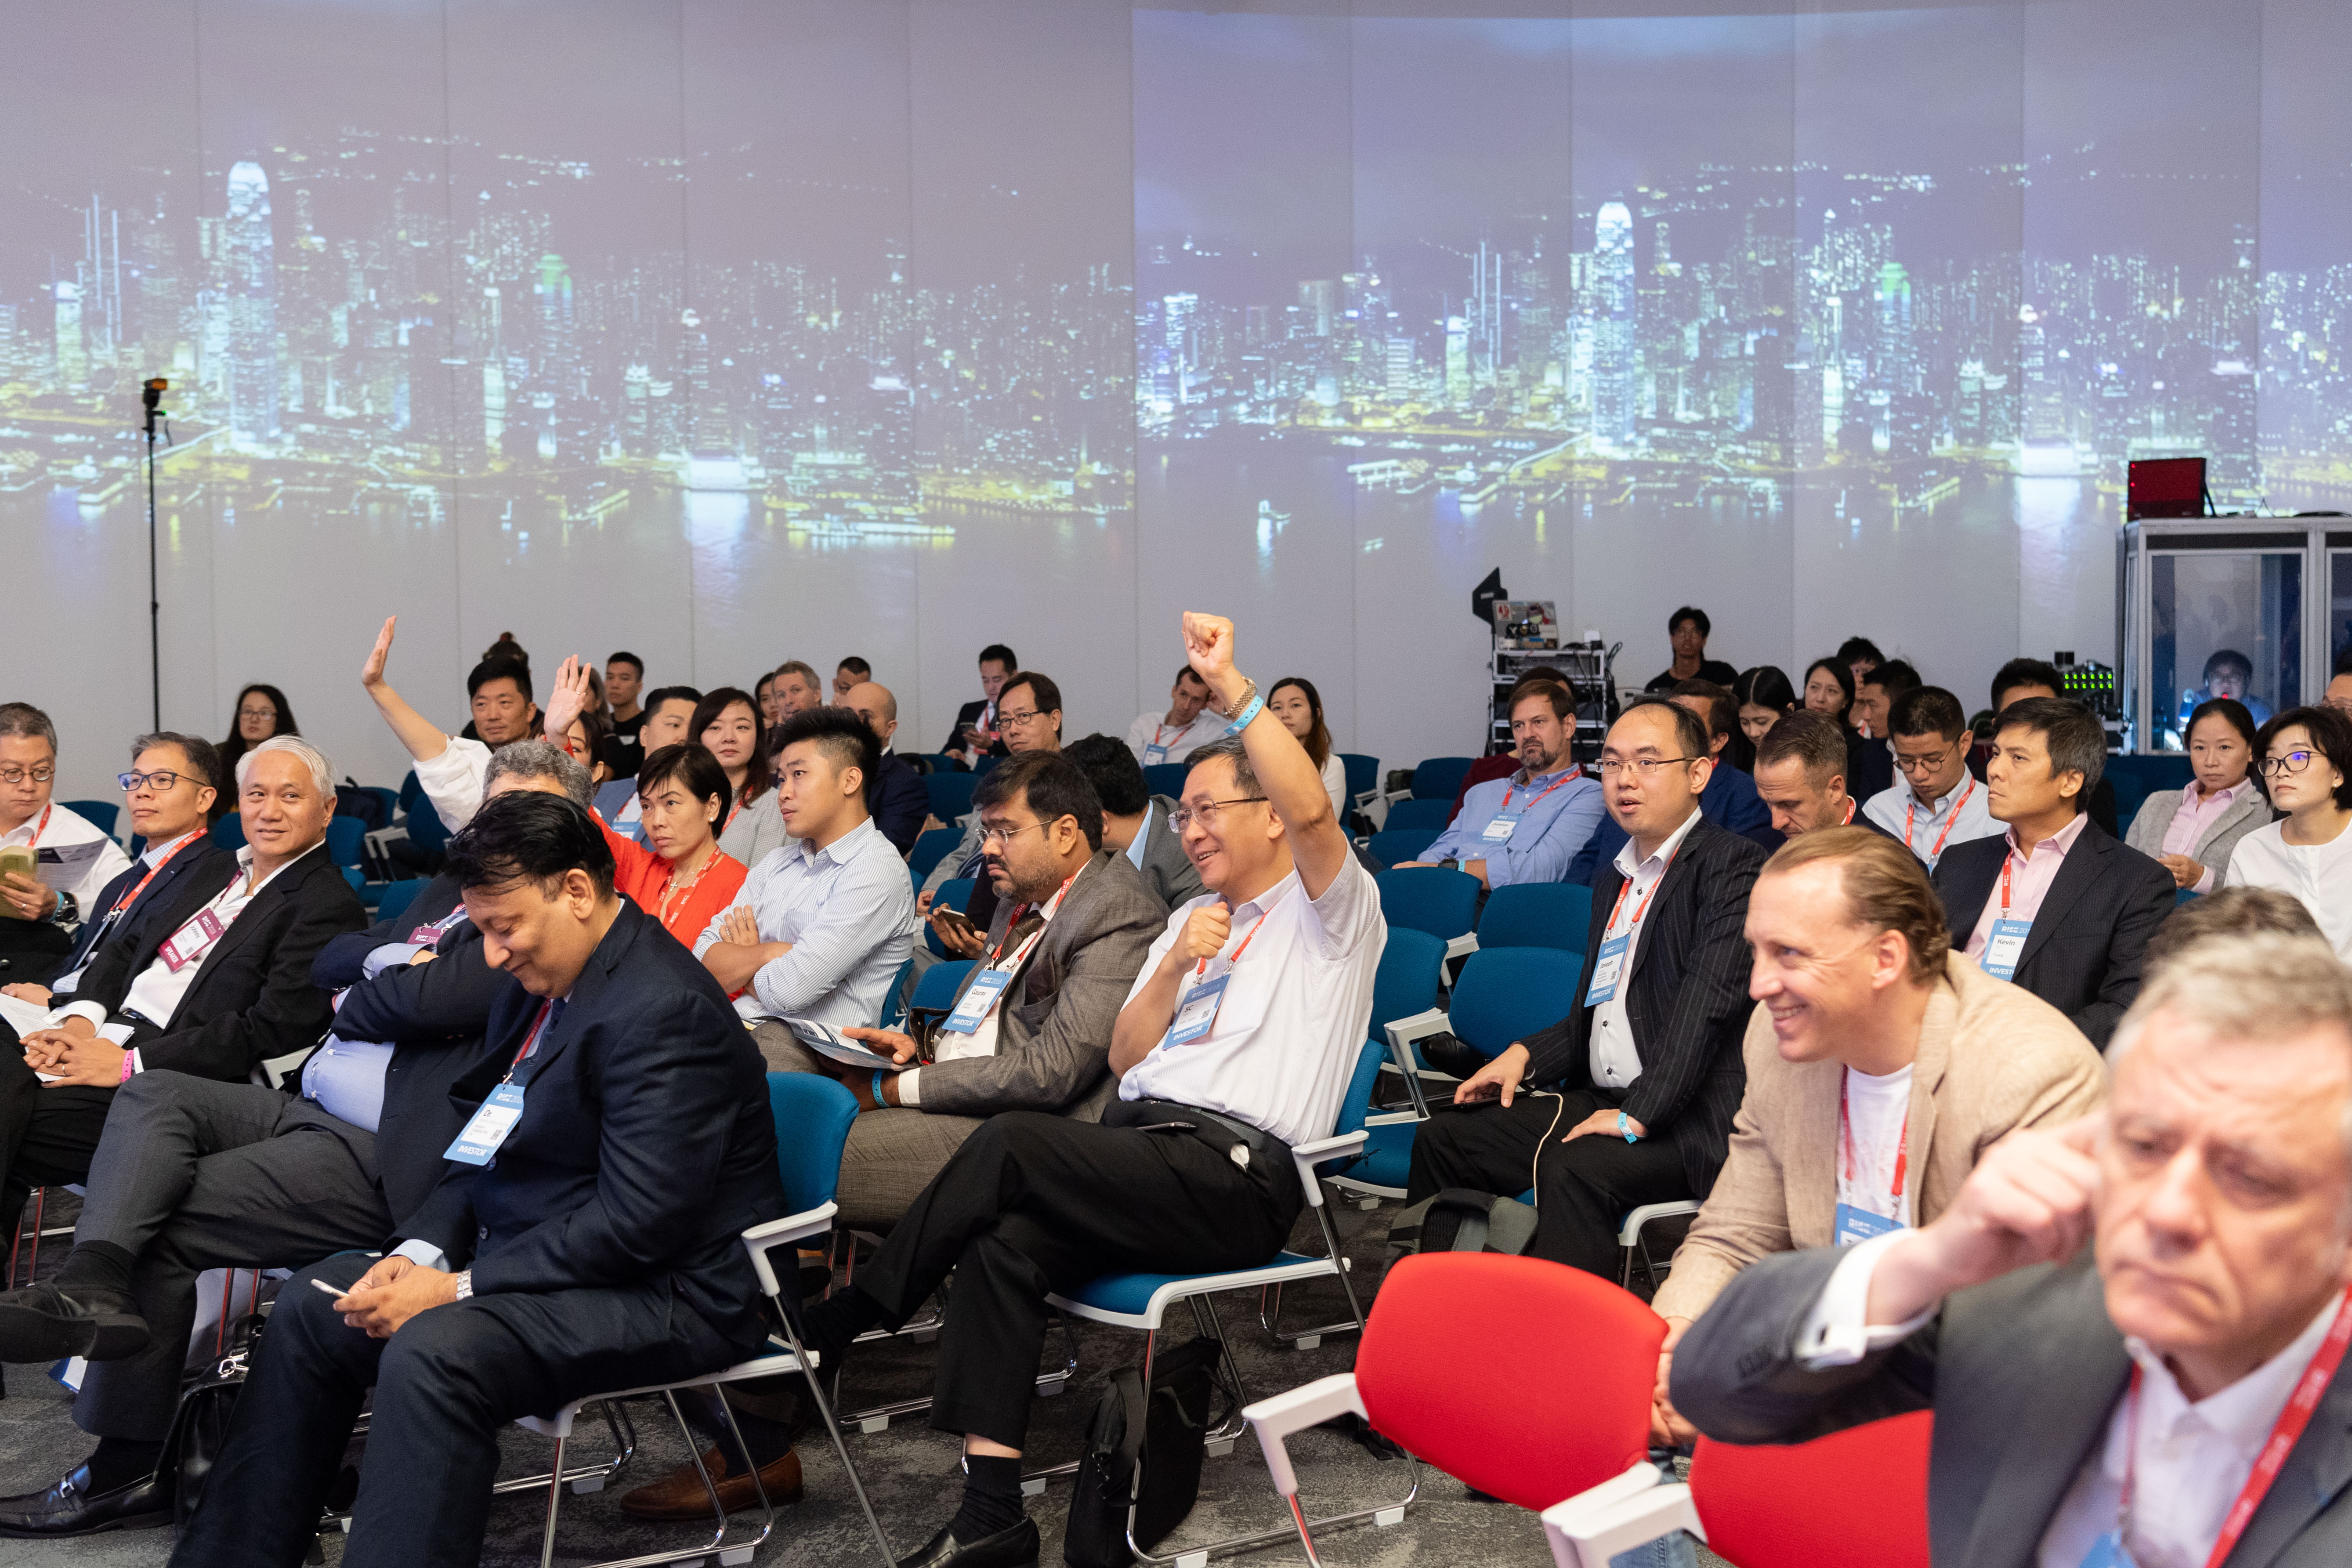 Hundreds of guests including startup entrepreneurs and investors actively join the discussions during the conference.